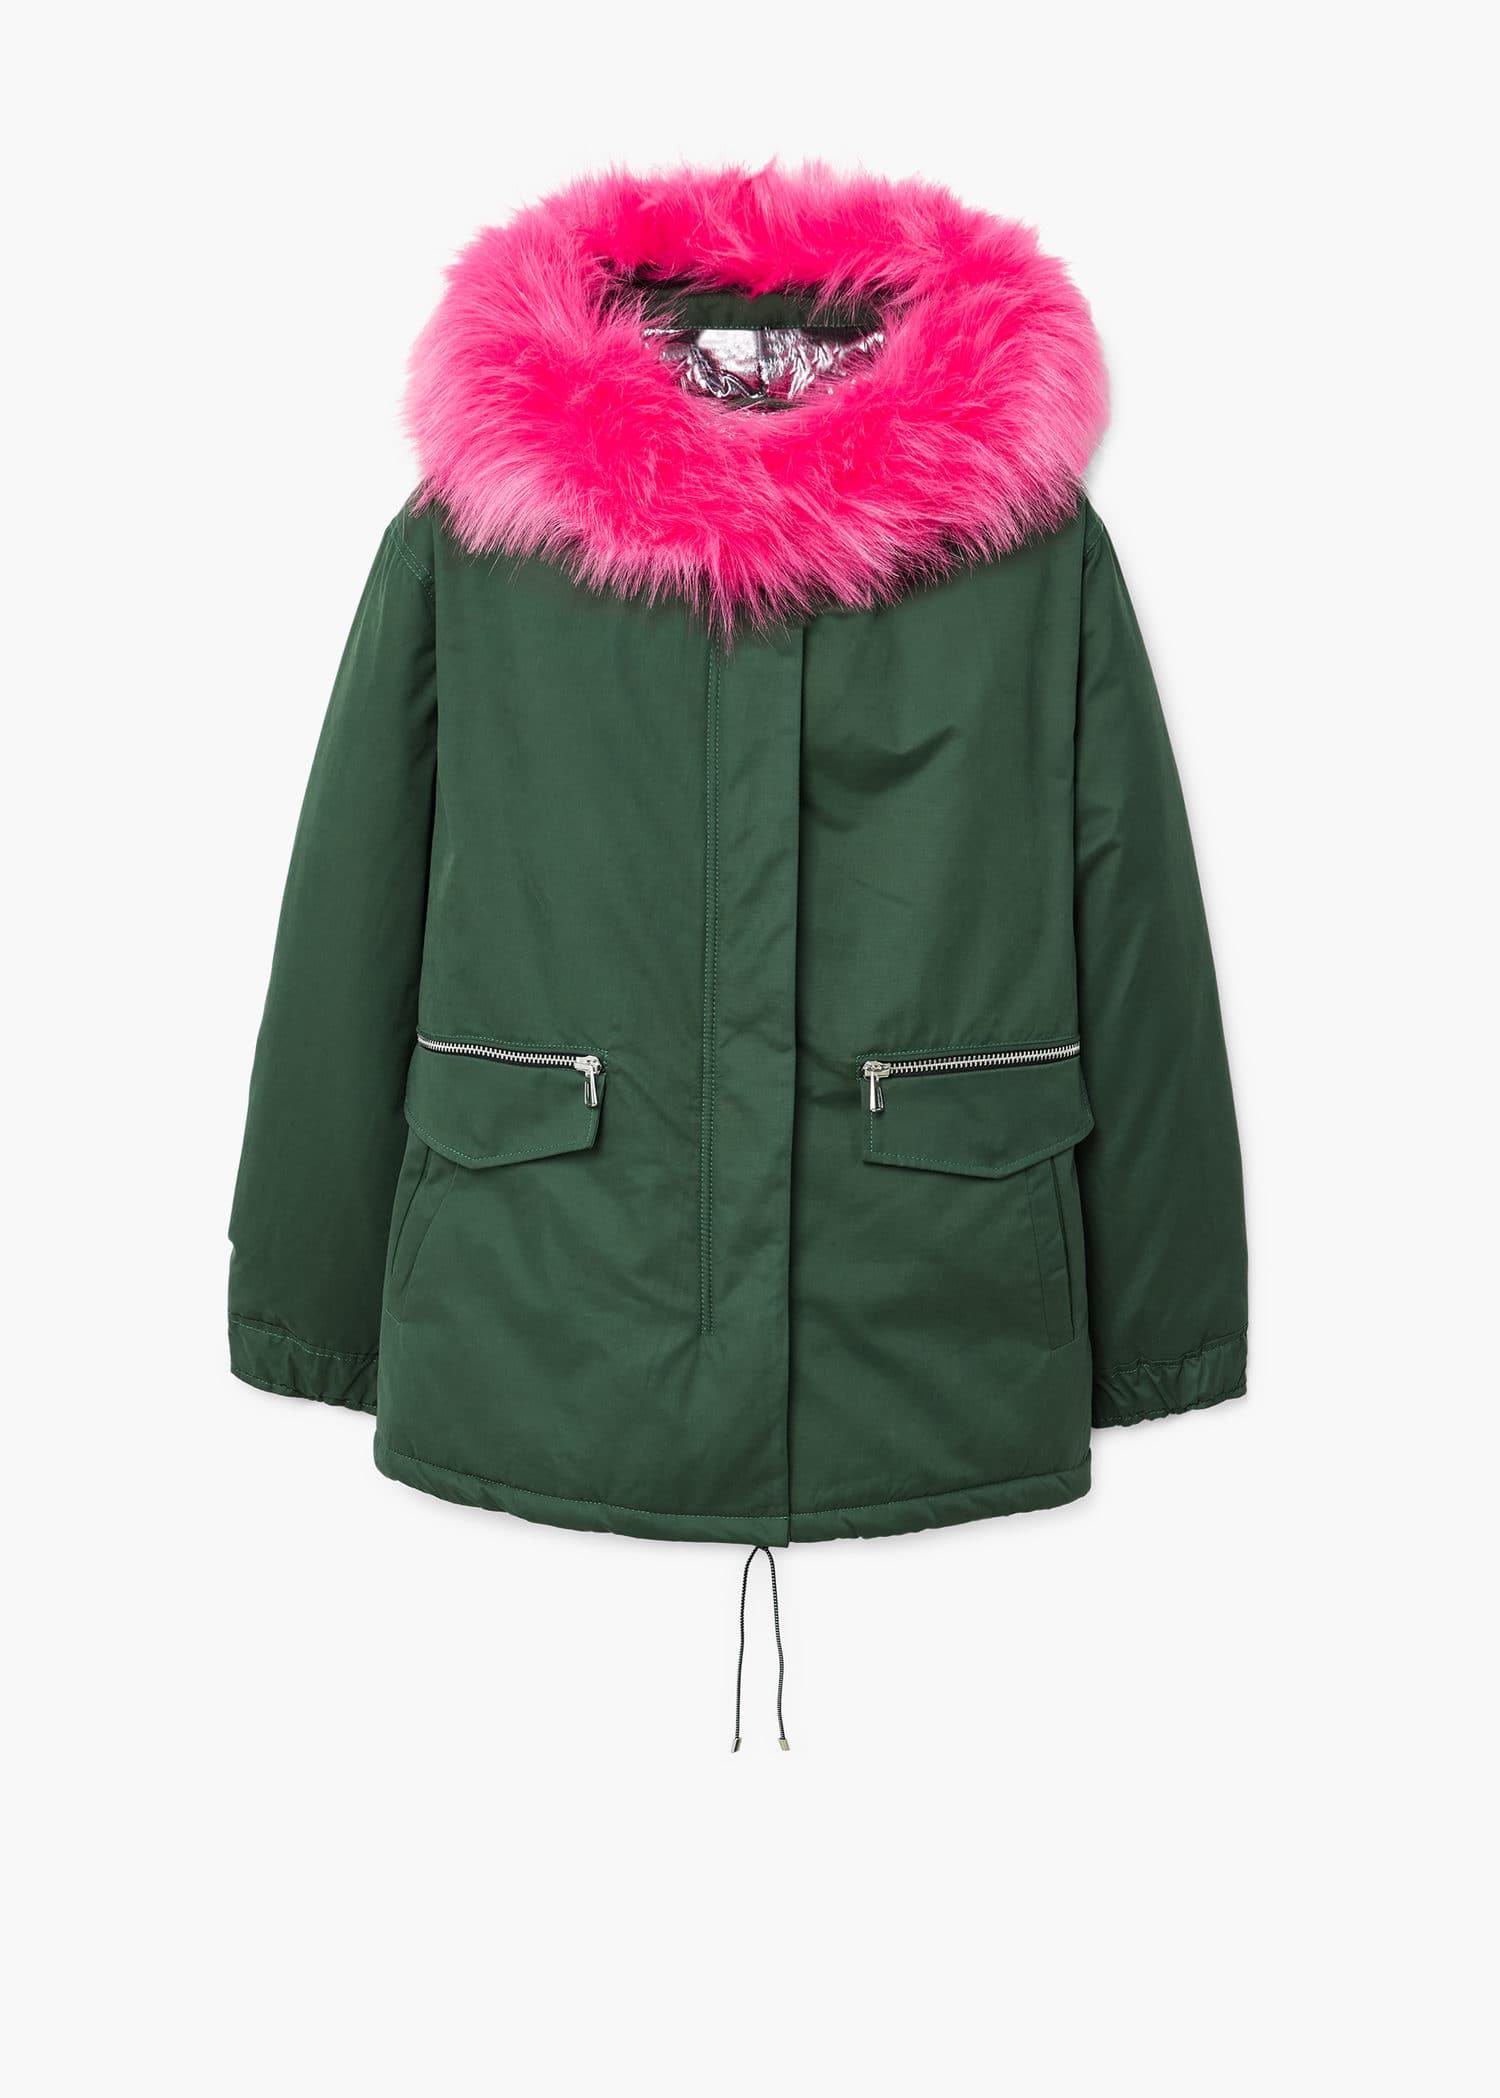 Contrast hooded parka jacket